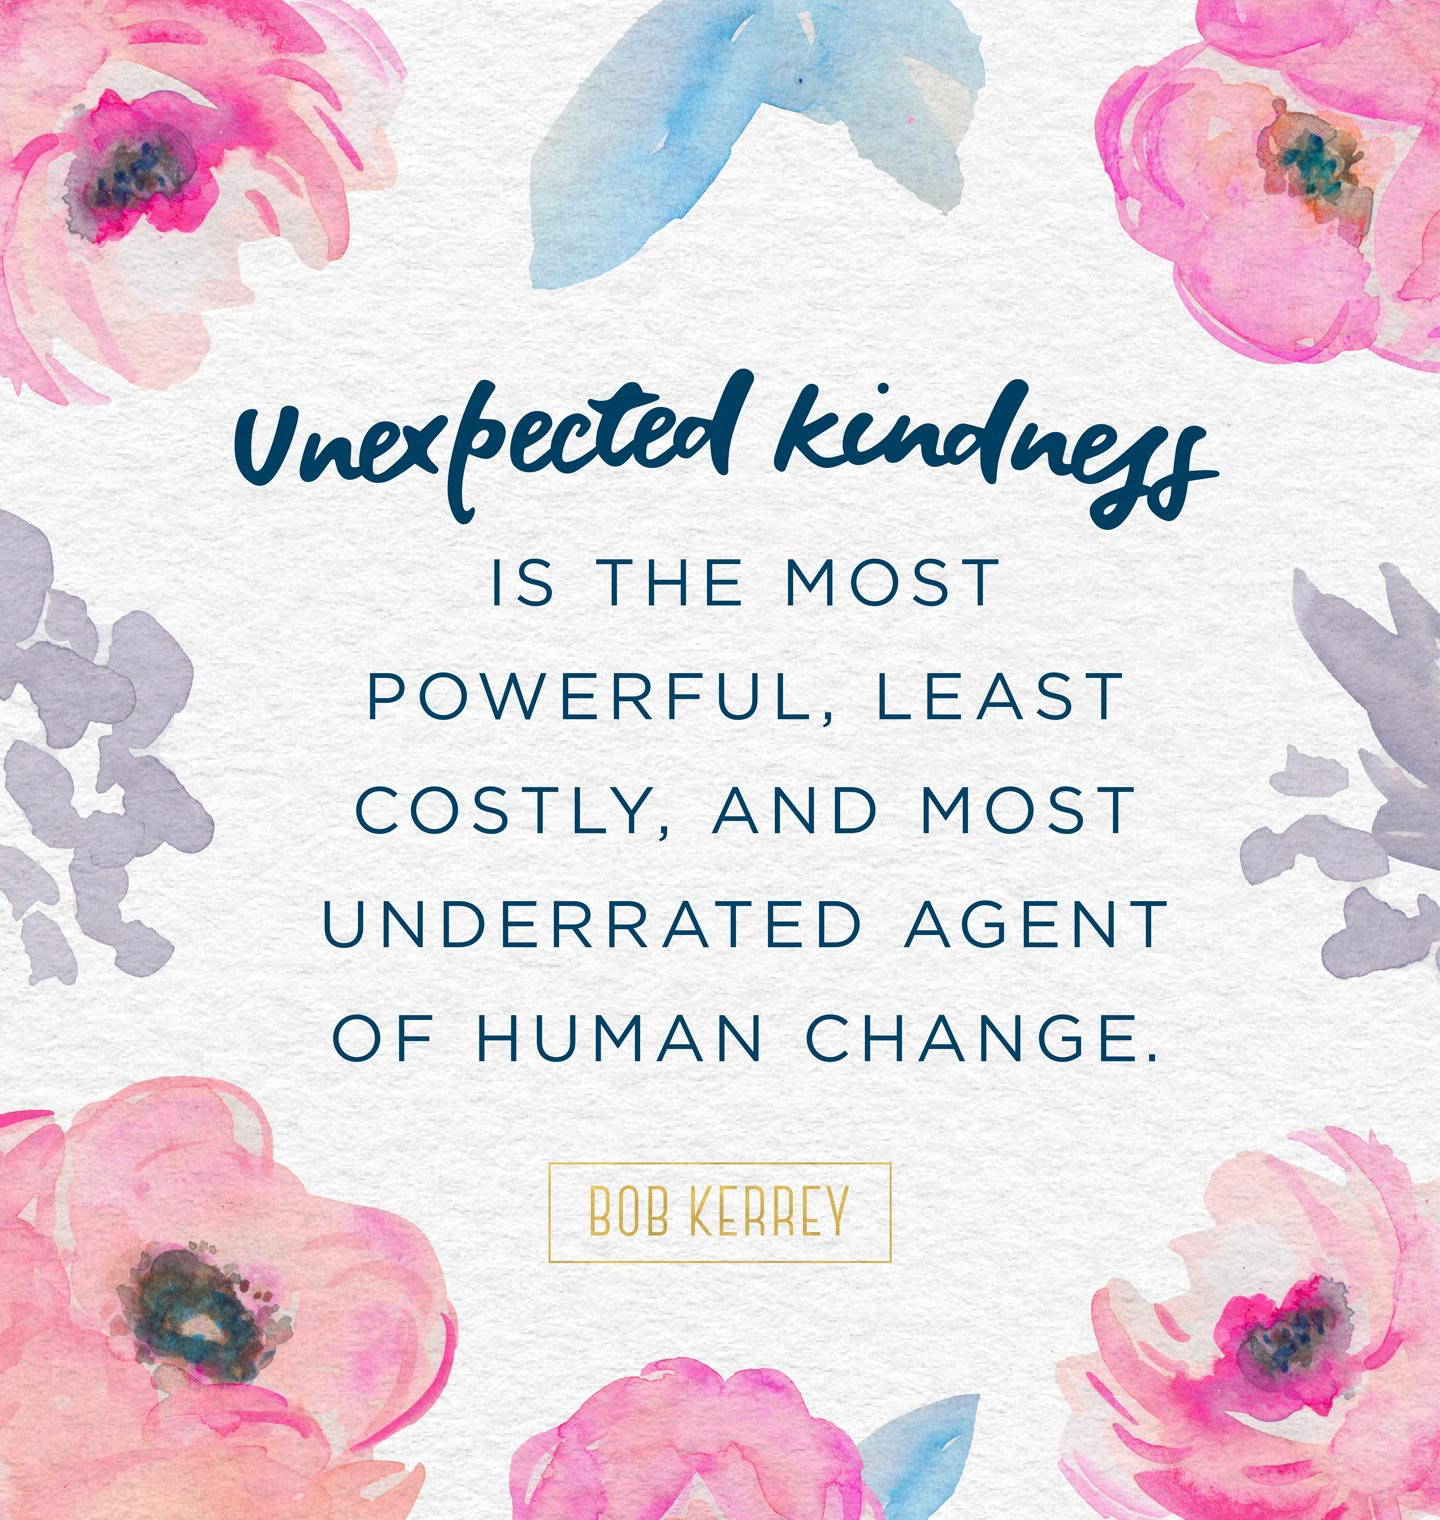 Loving Kindness Quotes  30 Inspiring Kindness Quotes That Will Enlighten You FTD